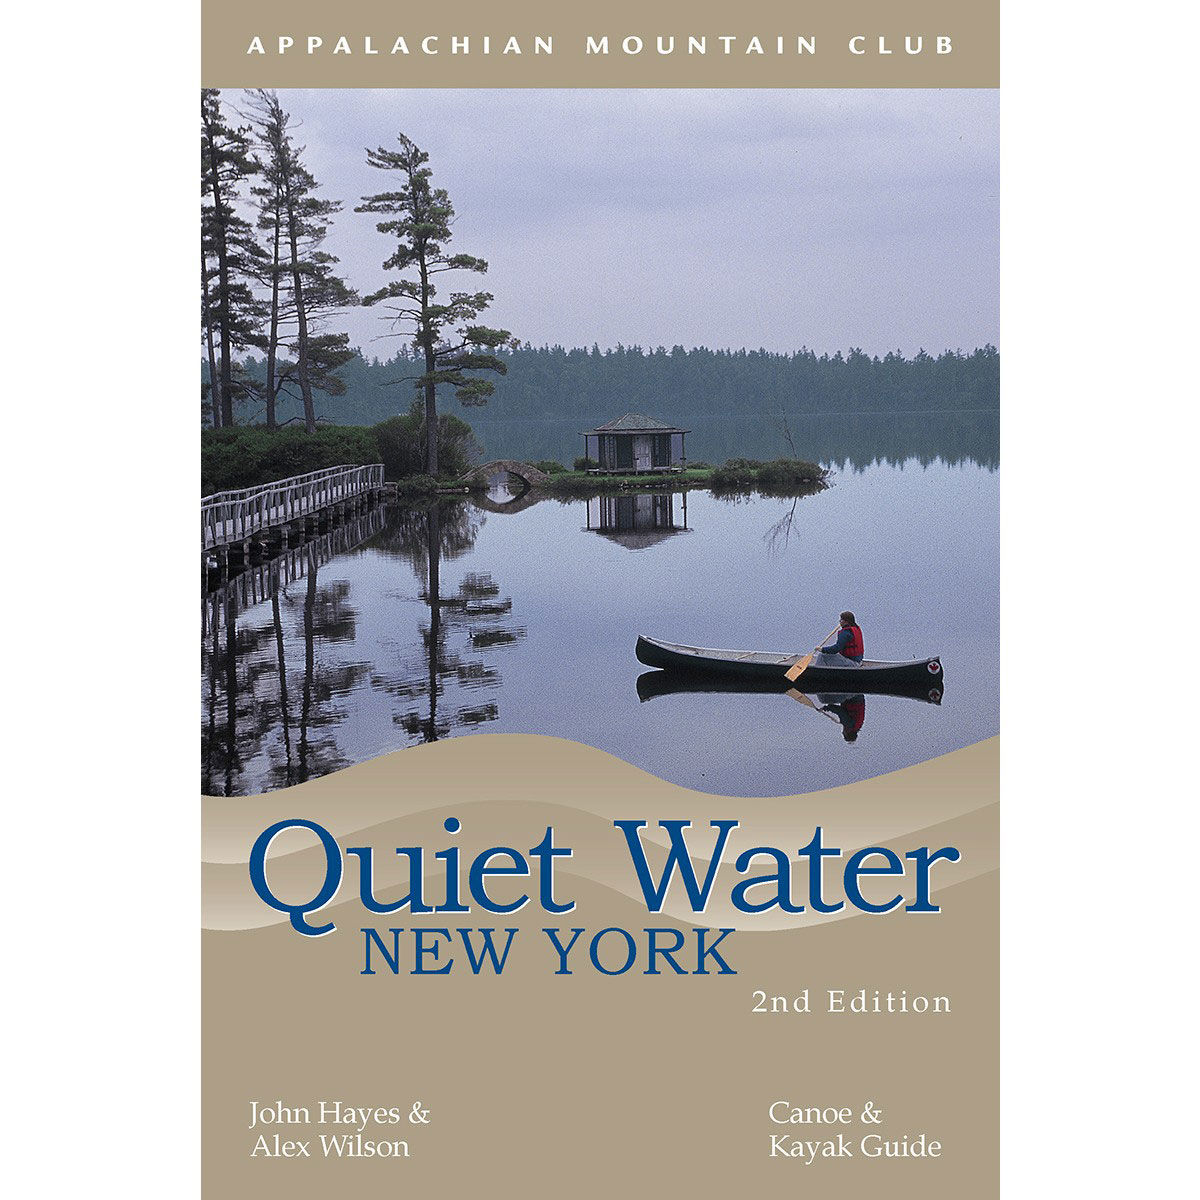 Appalachian Mountain Club Quiet Water: New York